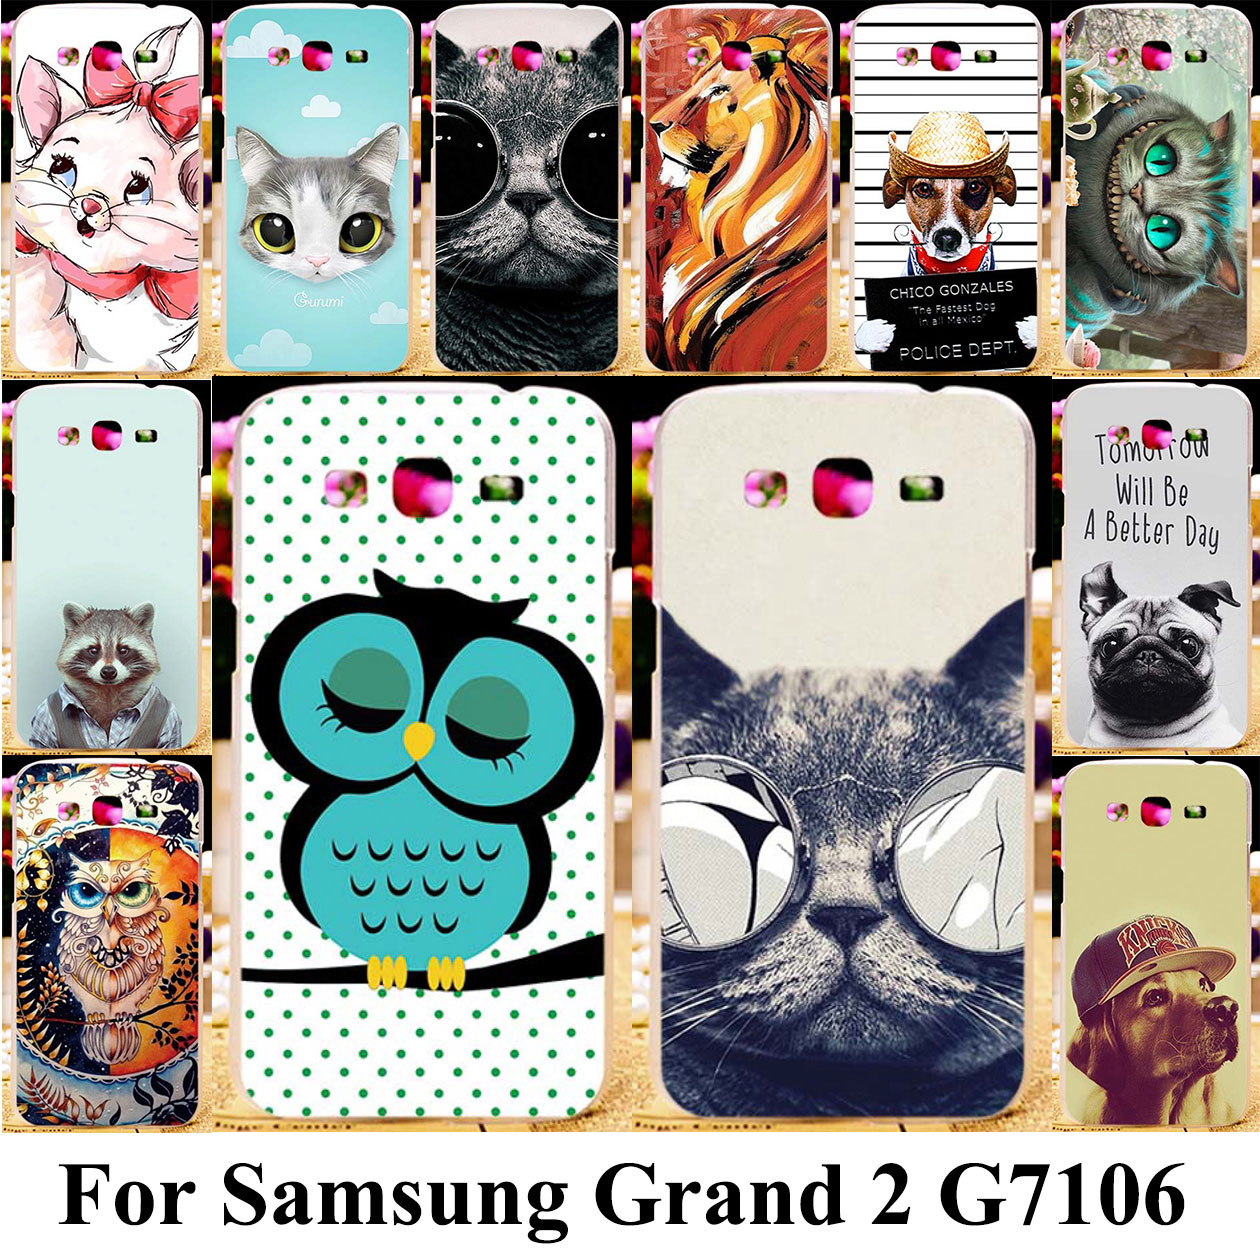 TPU Silicone Plastic Phone Cover <font><b>Case</b></font> For <font><b>Samsung</b></font> Galaxy <font><b>Grand</b></font> <font><b>2</b></font> <font><b>G7102</b></font> G7105 G7106 G7108 G7100 G71S SM-<font><b>G7102</b></font> Cat Bag <font><b>Cases</b></font> image